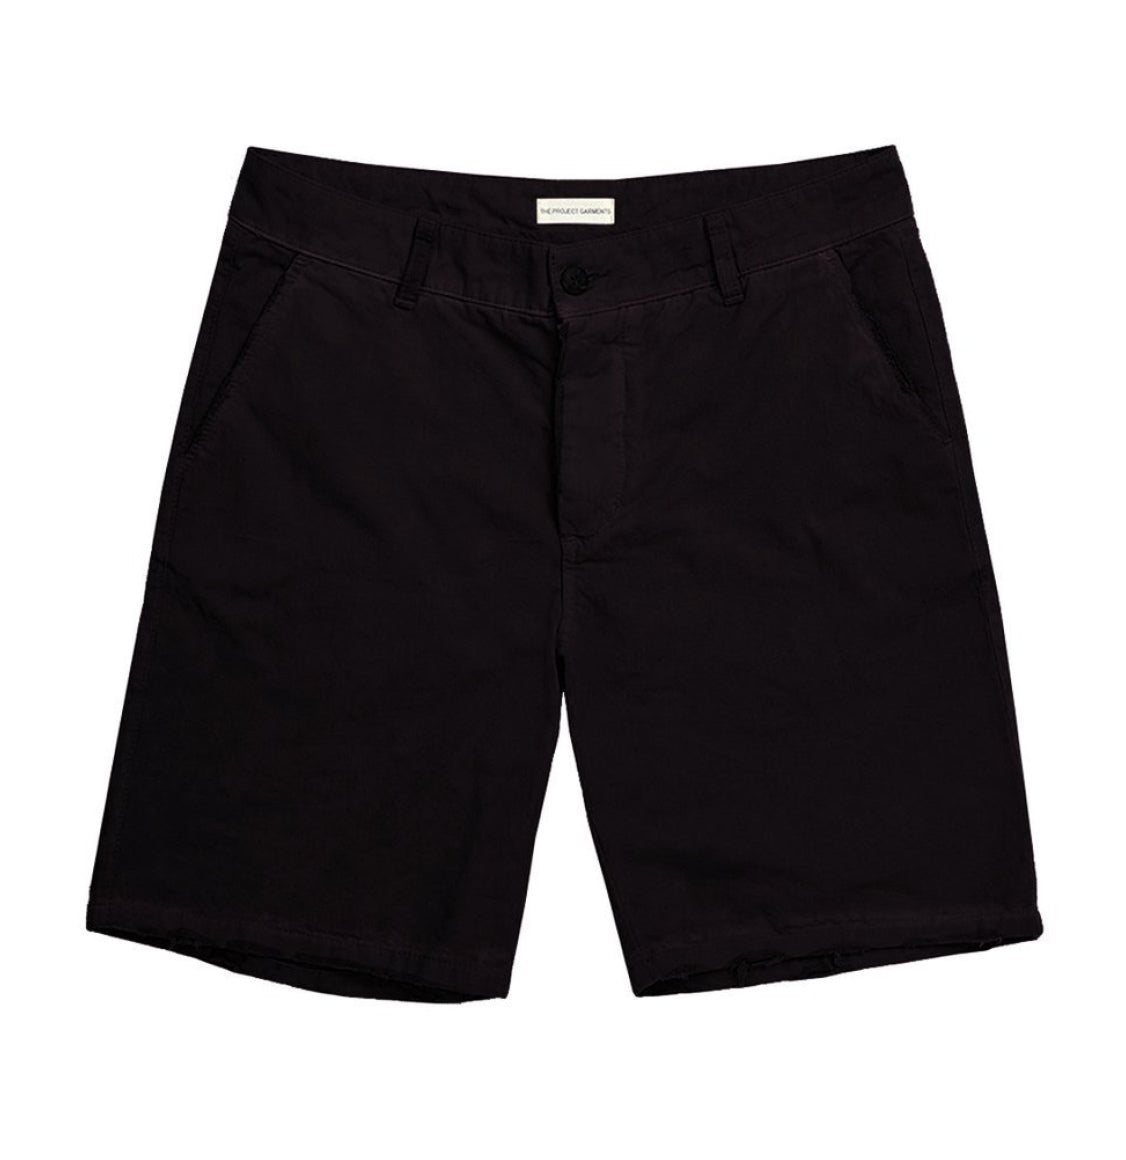 Cotton Blend Distressed Shorts Black | The Project Garments - Product